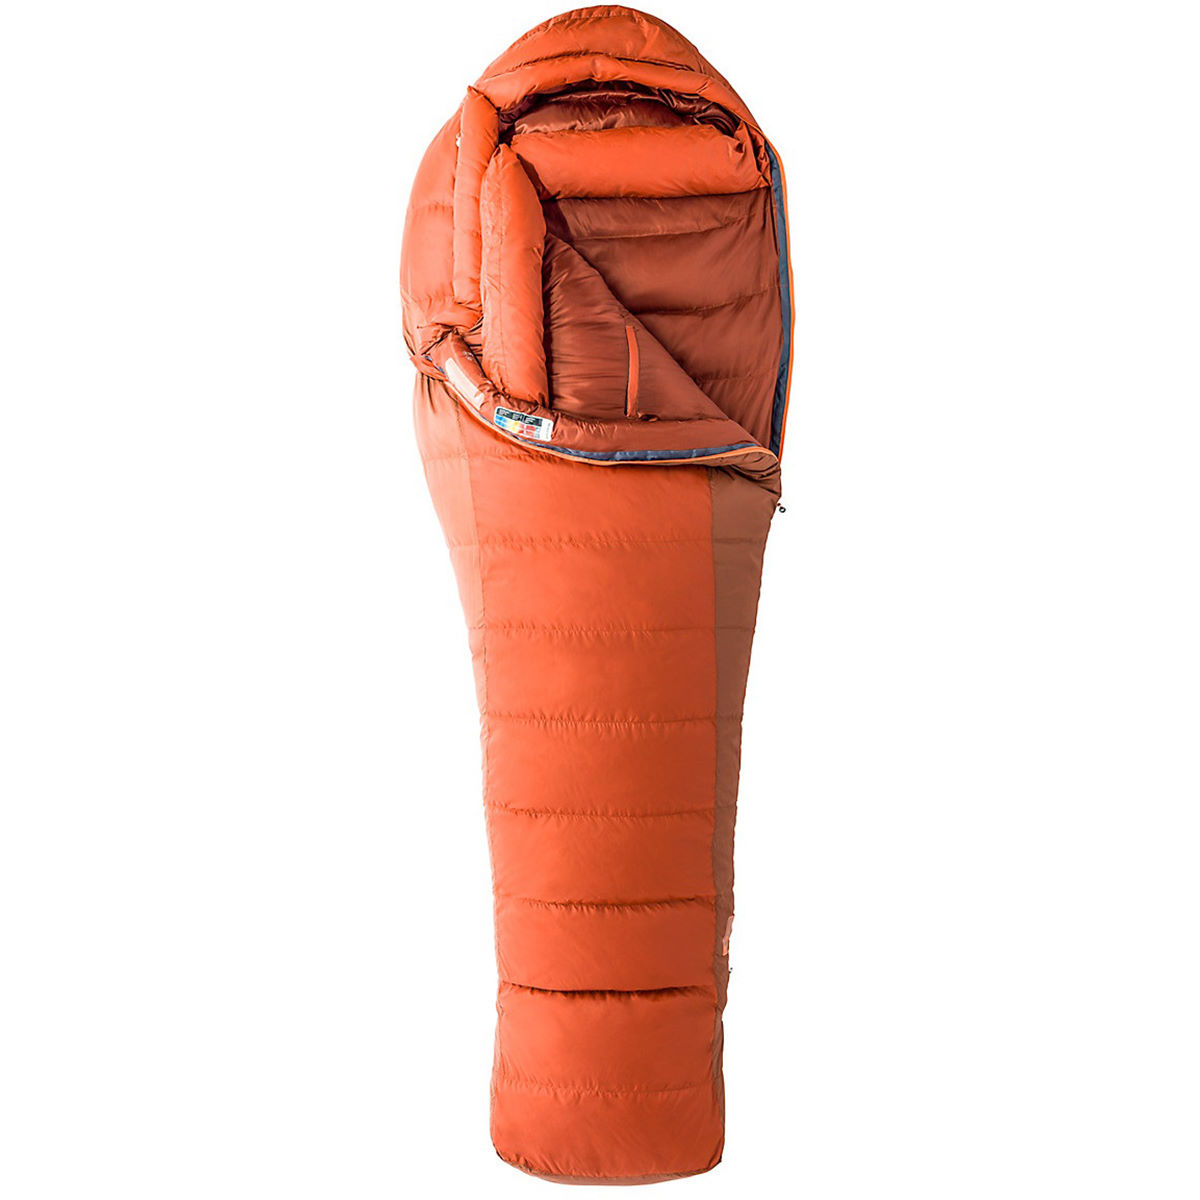 Marmot Never Summer Sleeping Bag - Sacos de dormir